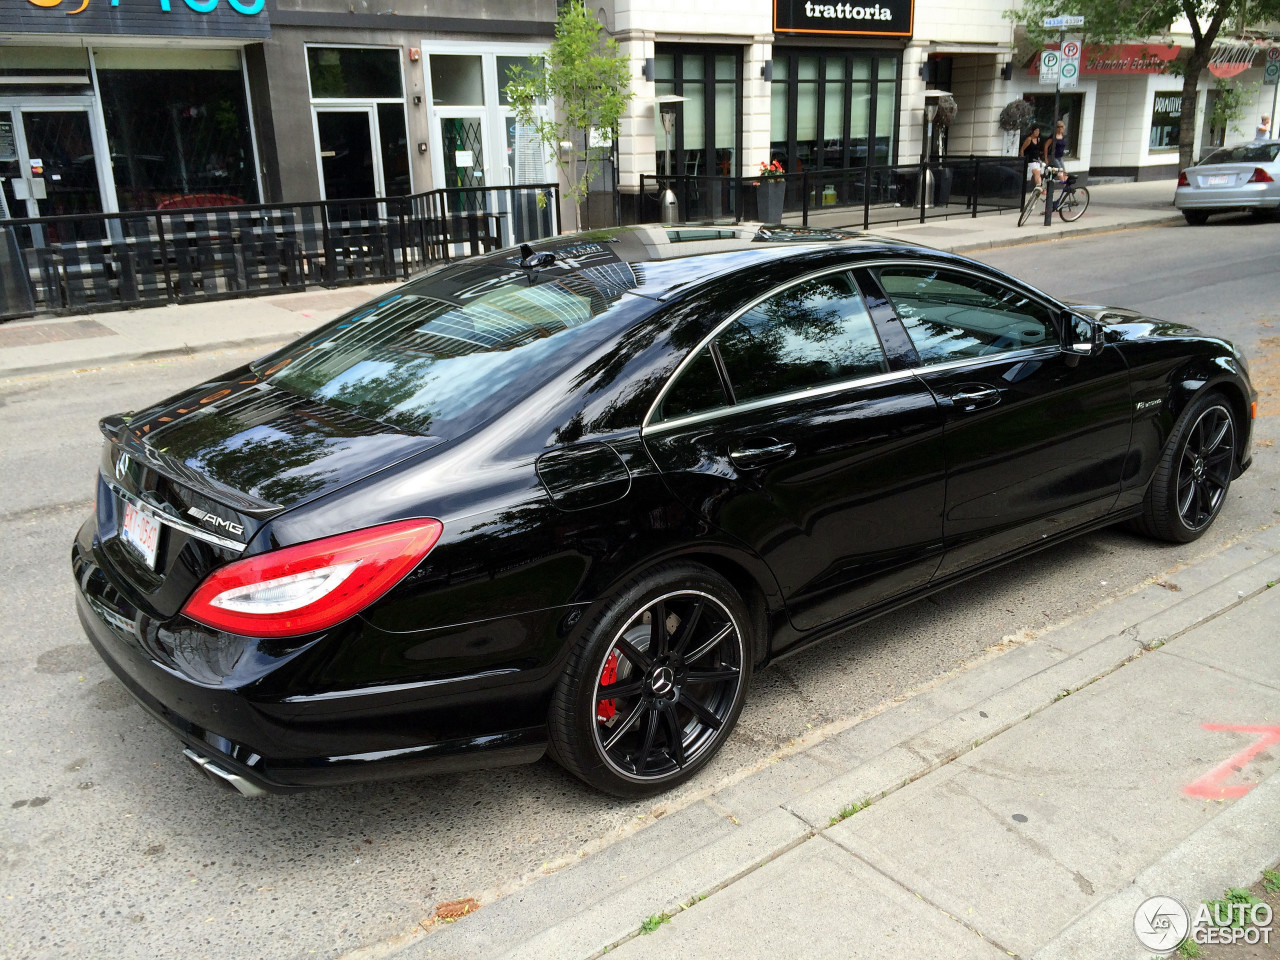 C 63 amg 4 matic review 2015 autos post for 2014 mercedes benz cls63 amg 4matic